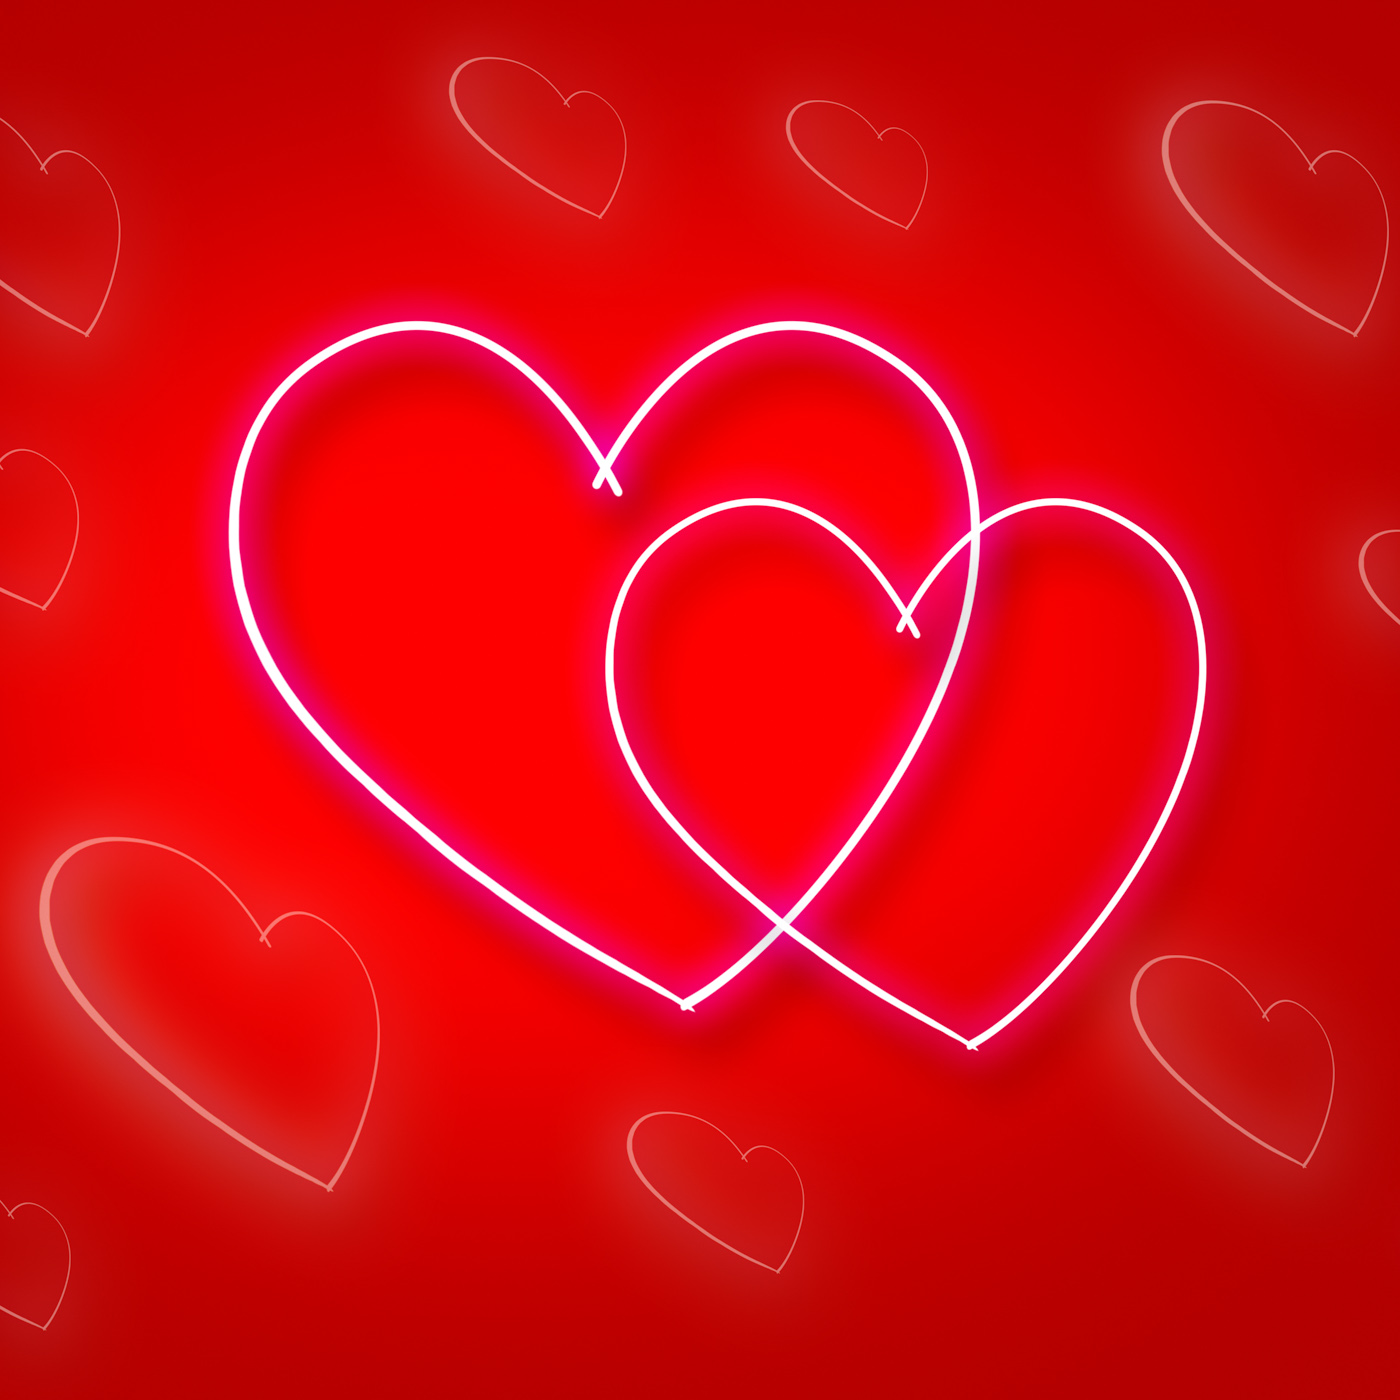 Intertwinted hearts shows valentines day and background photo